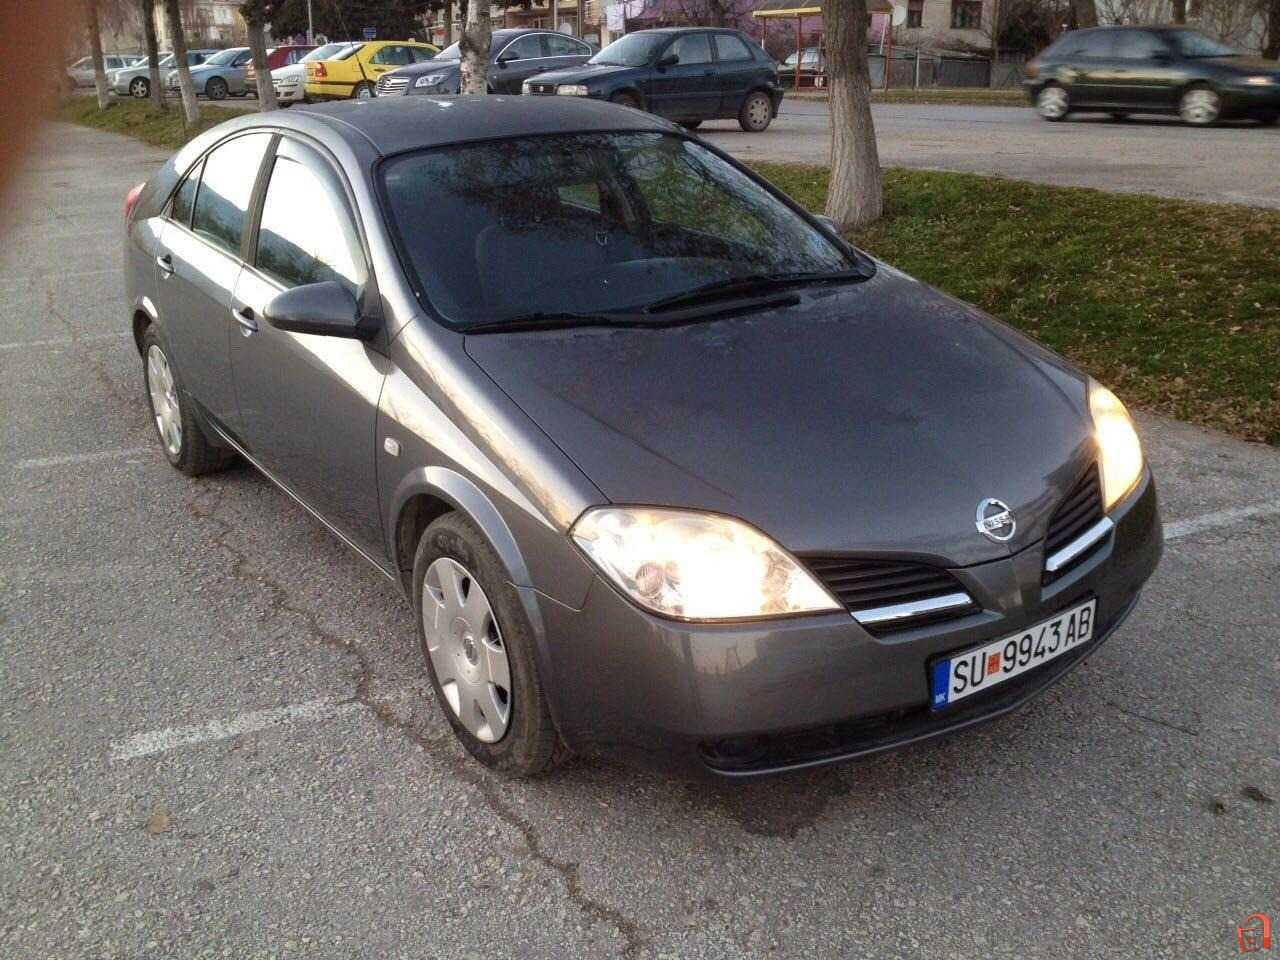 ad nissan primera 1 9 dci for sale struga vehicles automobiles nissan. Black Bedroom Furniture Sets. Home Design Ideas